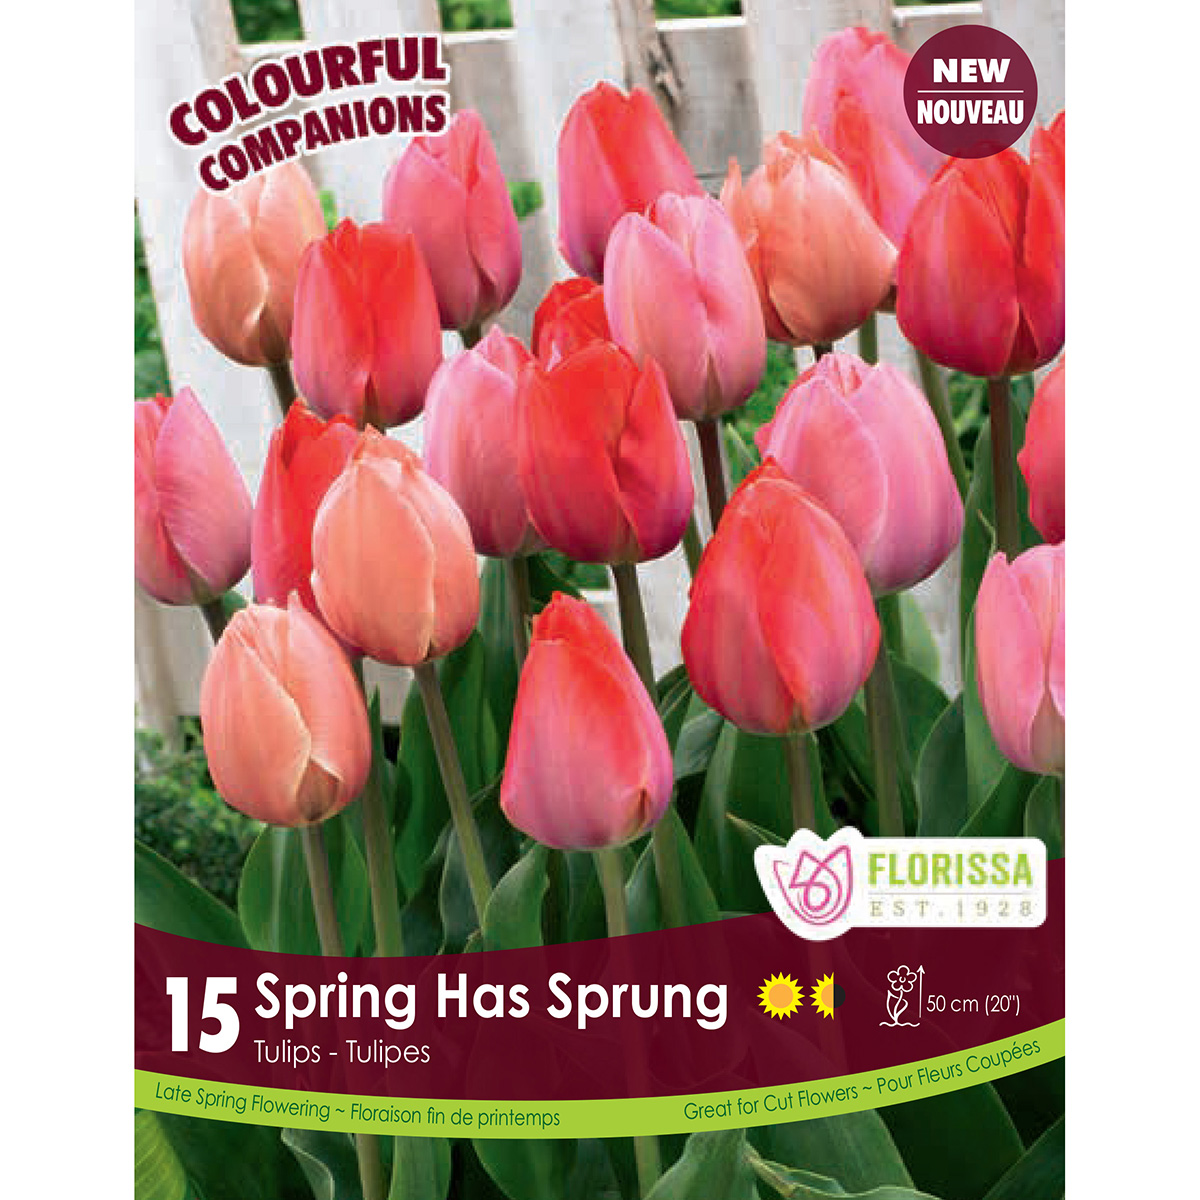 Colourful Companions Tulipa 'Spring Has Sprung' Bulbs